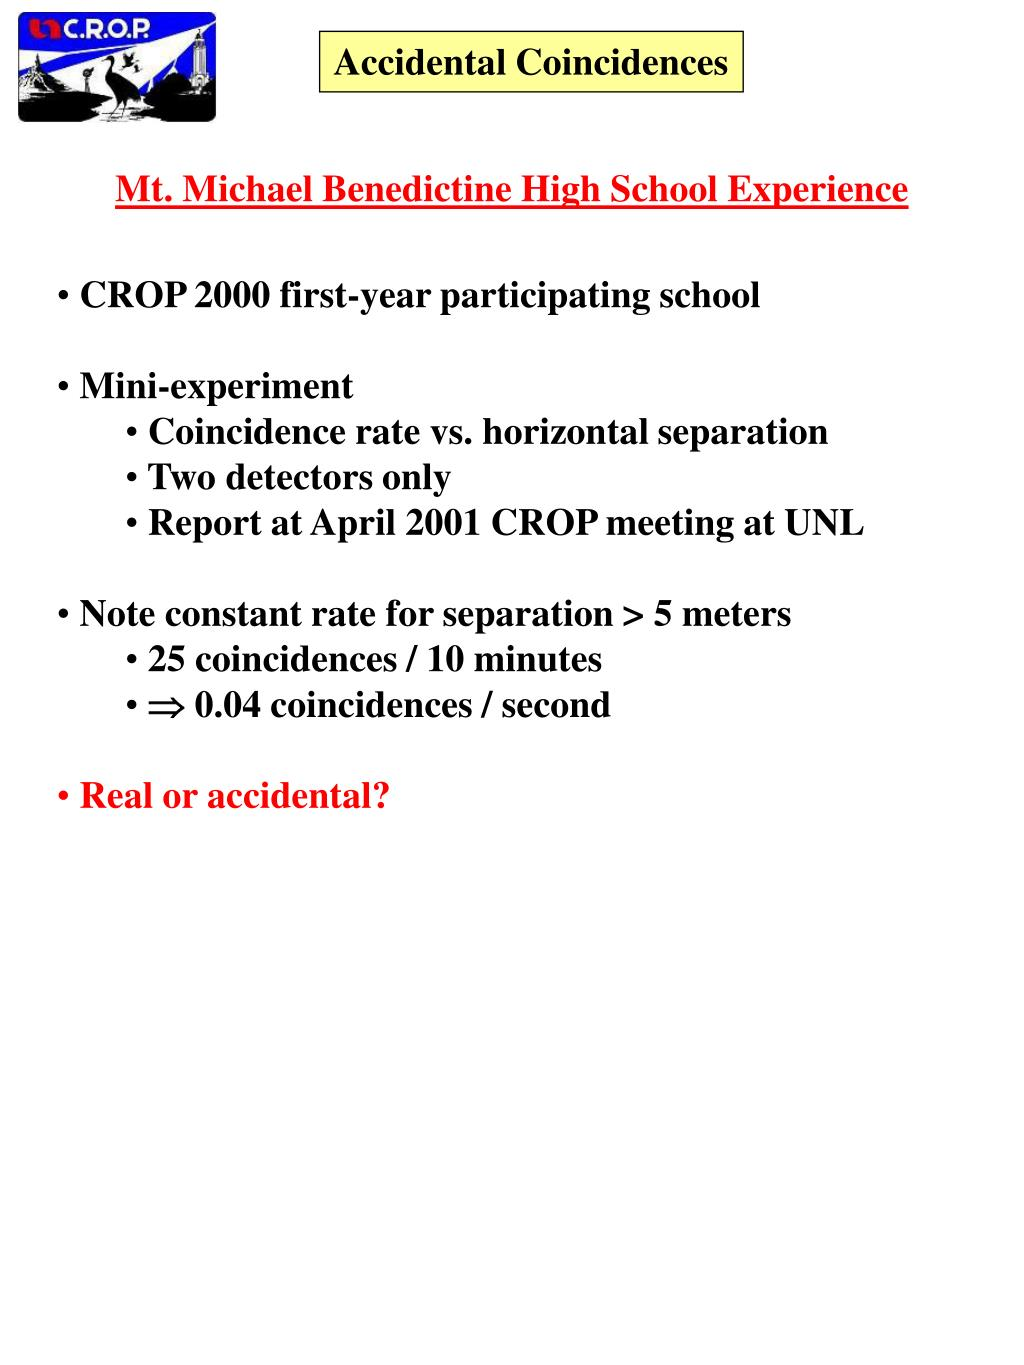 PPT - Accidental Coincidences PowerPoint Presentation - ID